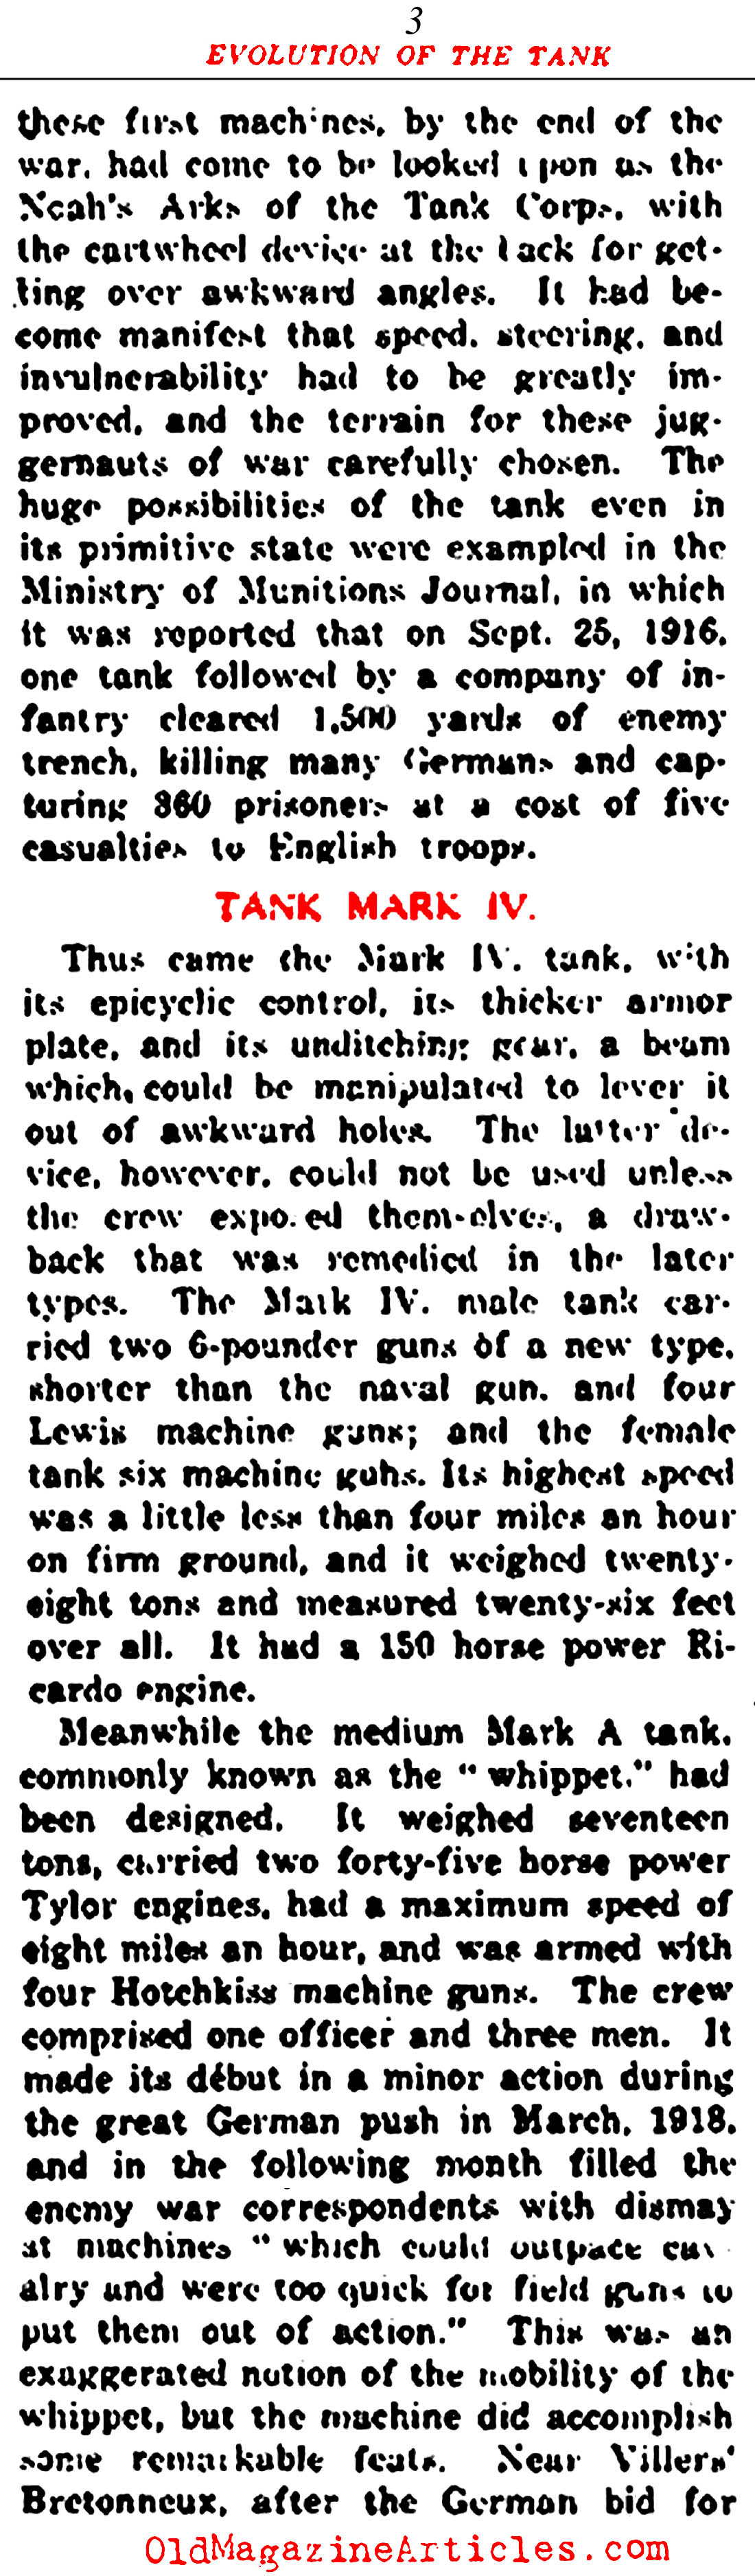 The Evolution of the Tank (New York Times, 1919)